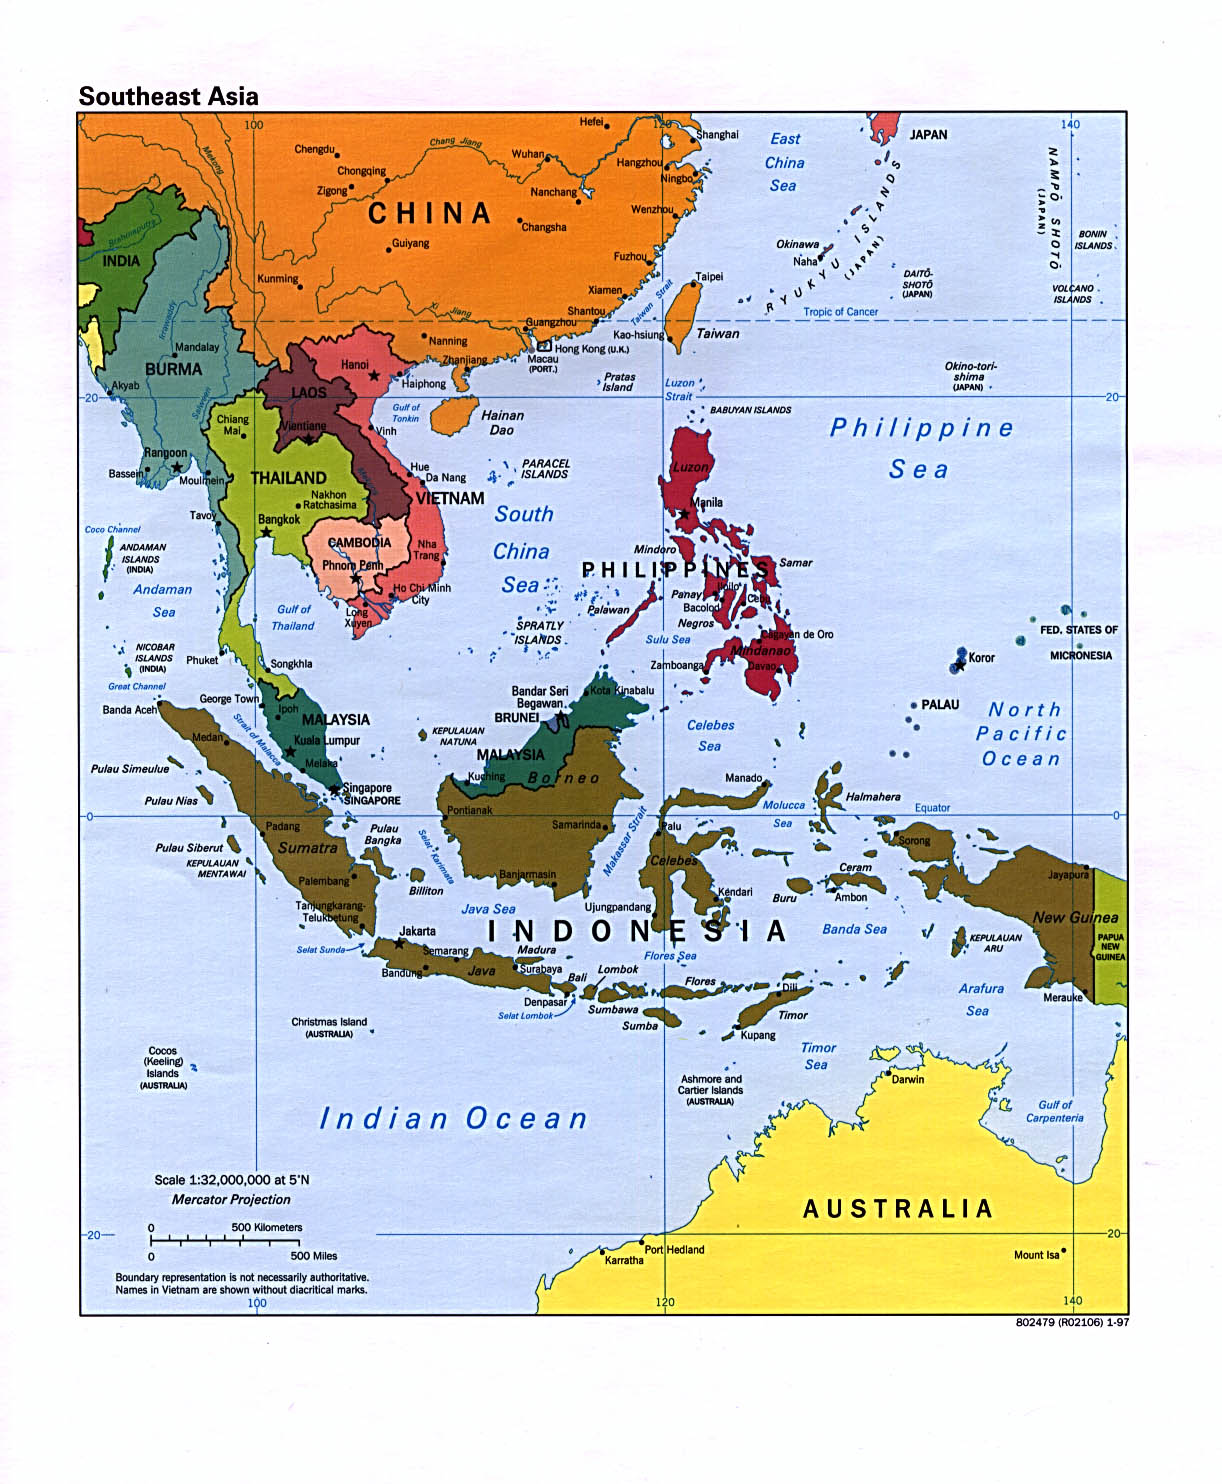 Southeast Asia Political Map 1997 Full size